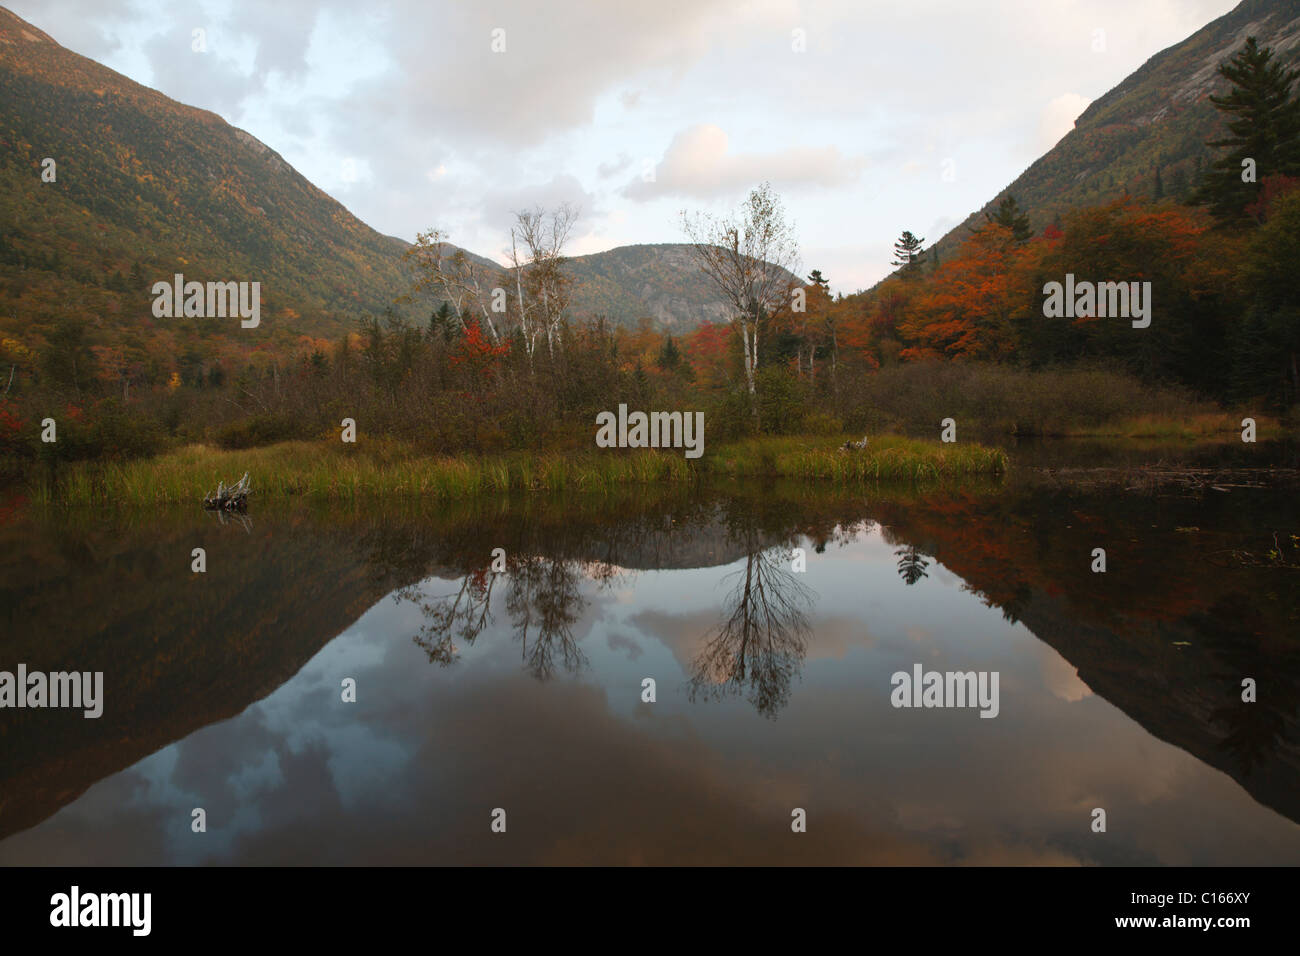 Crawford Notch State Park in the White Mountains, New Hampshire USA Stock Photo